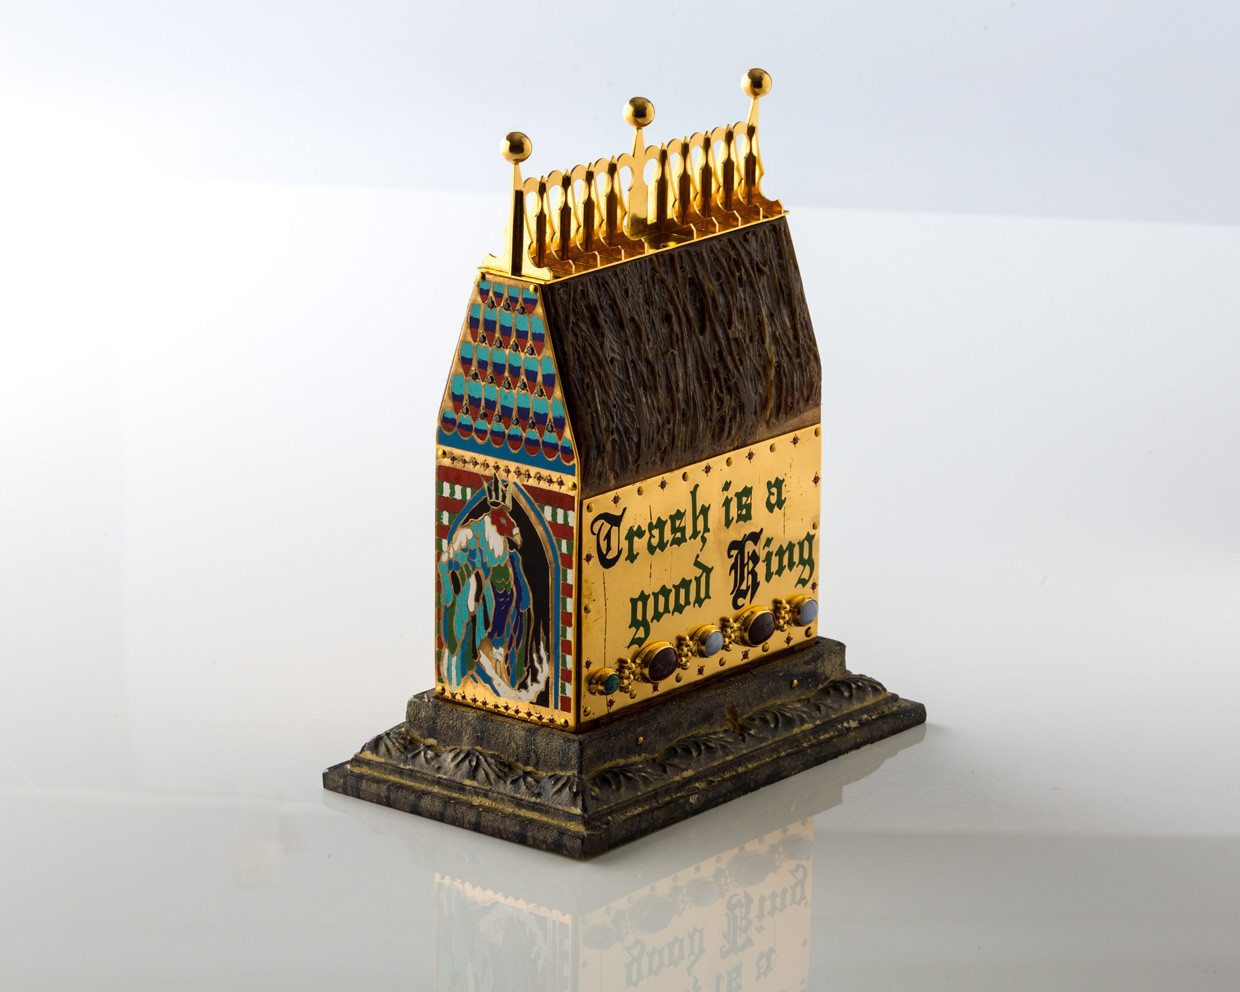 Reliquary of Limoges, 24 K. gold plated copper, vitreous enamel, aluminum, synthetic sapphire, synthetic ruby, agate, malachite, deer sinew, hydro-graphic film, red oak sculpture by Lucas Pointon.